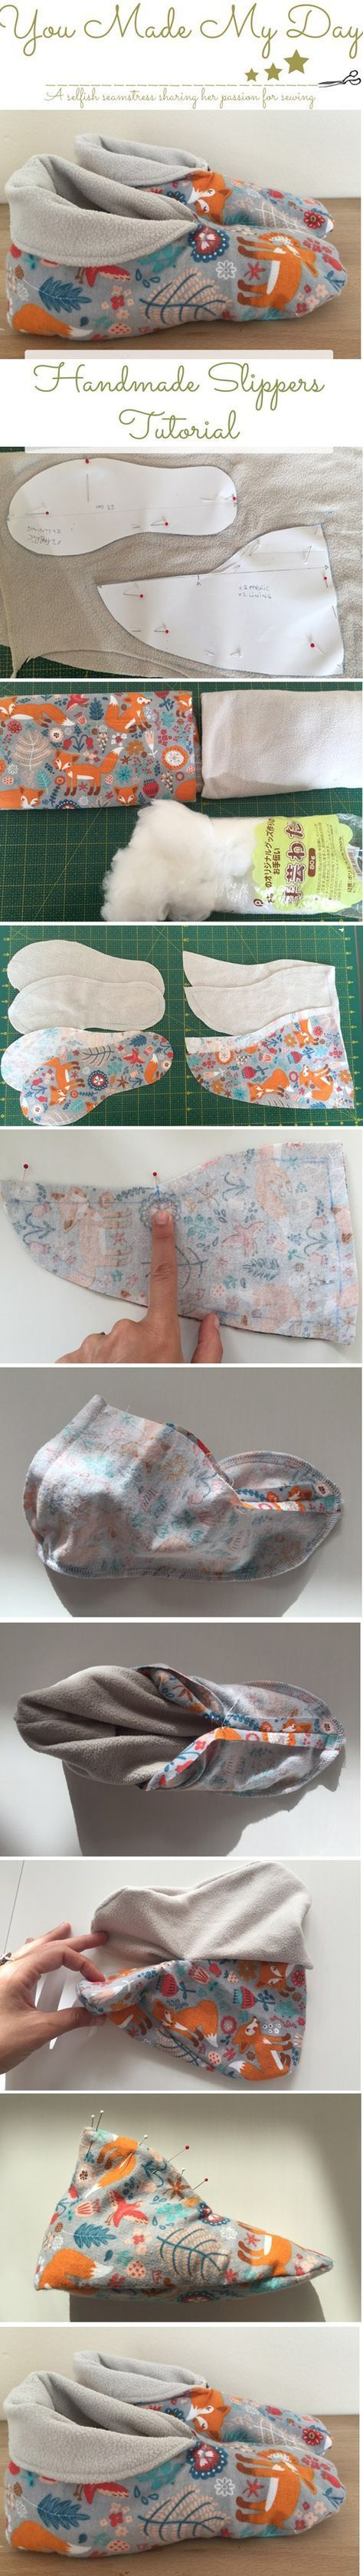 344 besten sewing ideas bilder auf pinterest n harbeiten for Innendekoration kurs